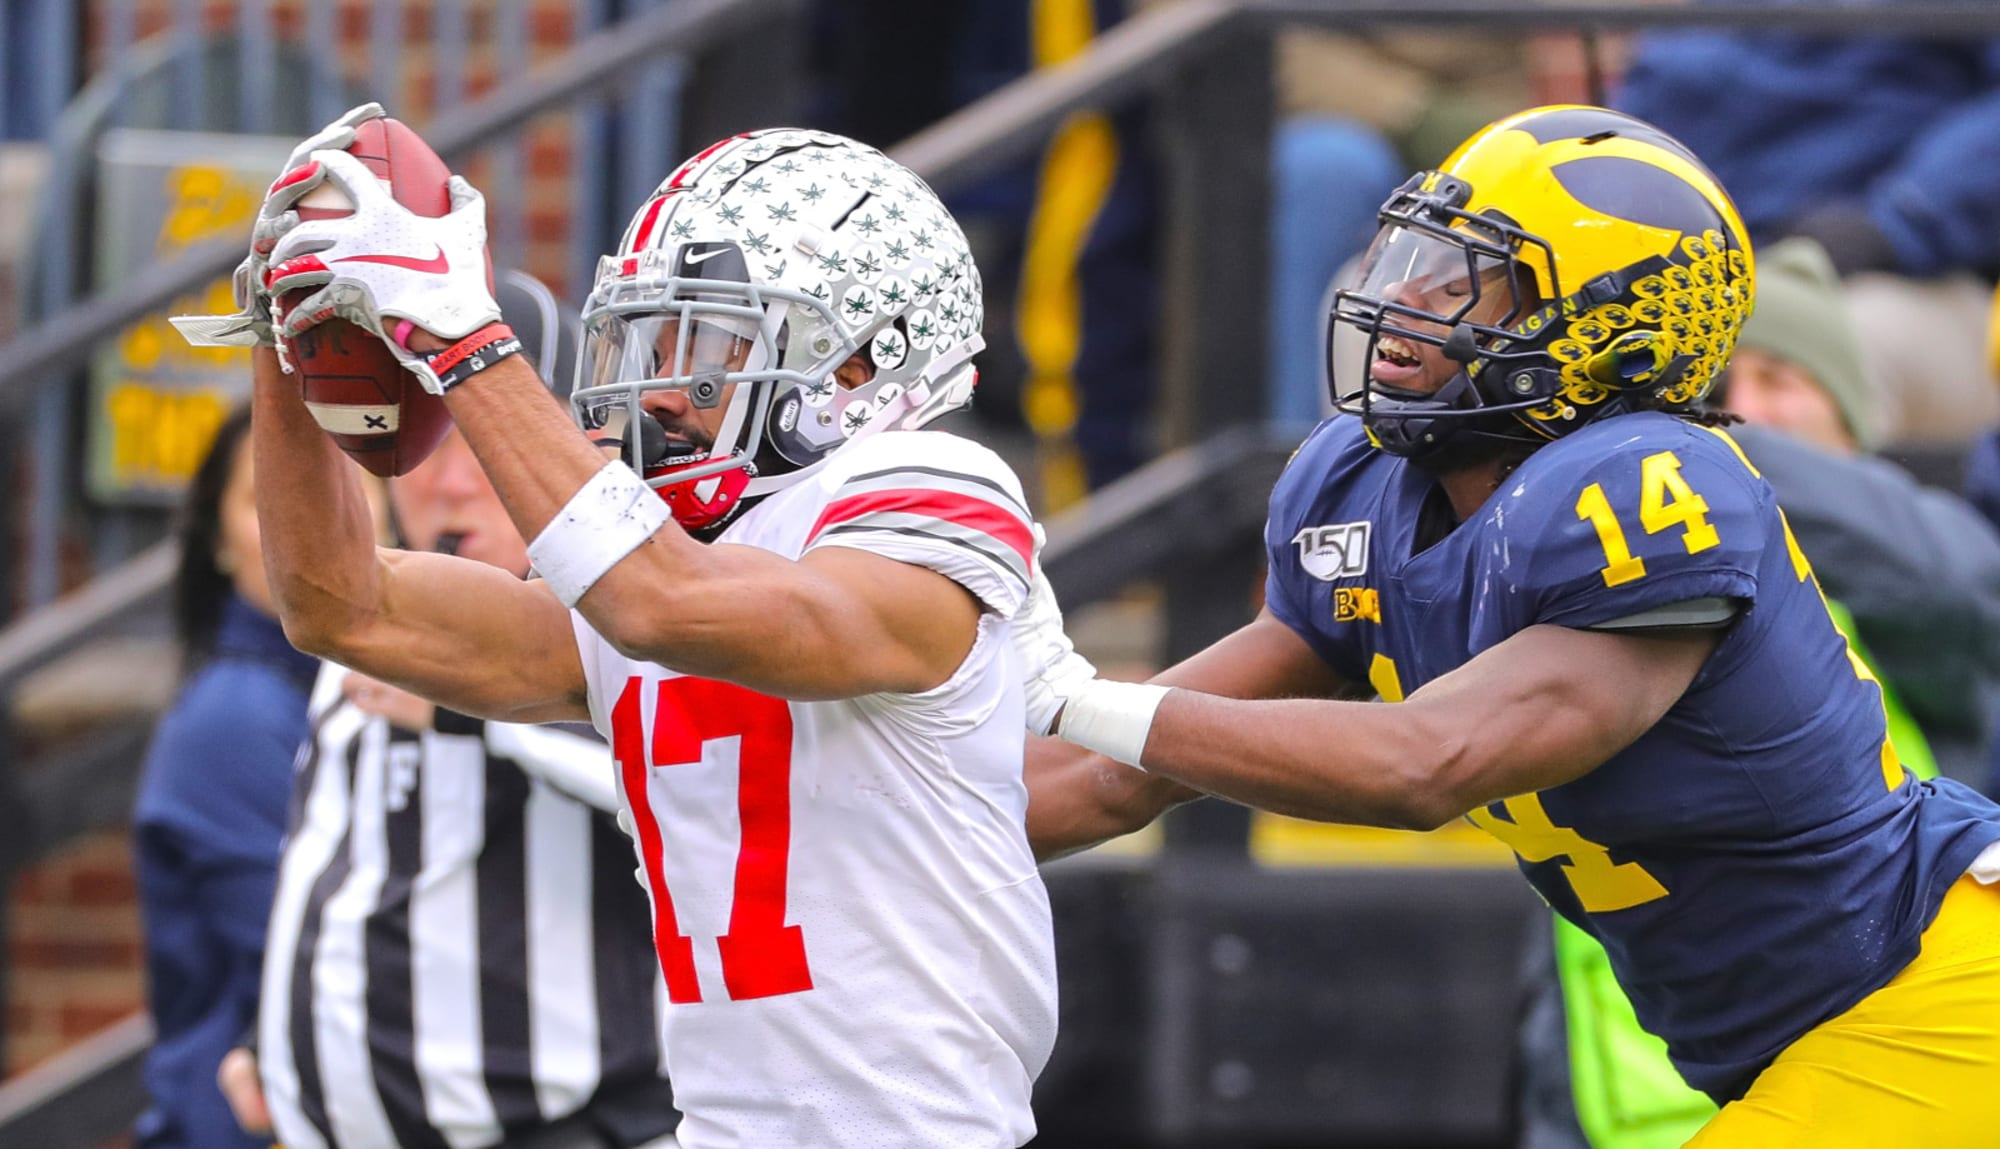 Ohio State football: This could be biggest blowout of TTUN ever